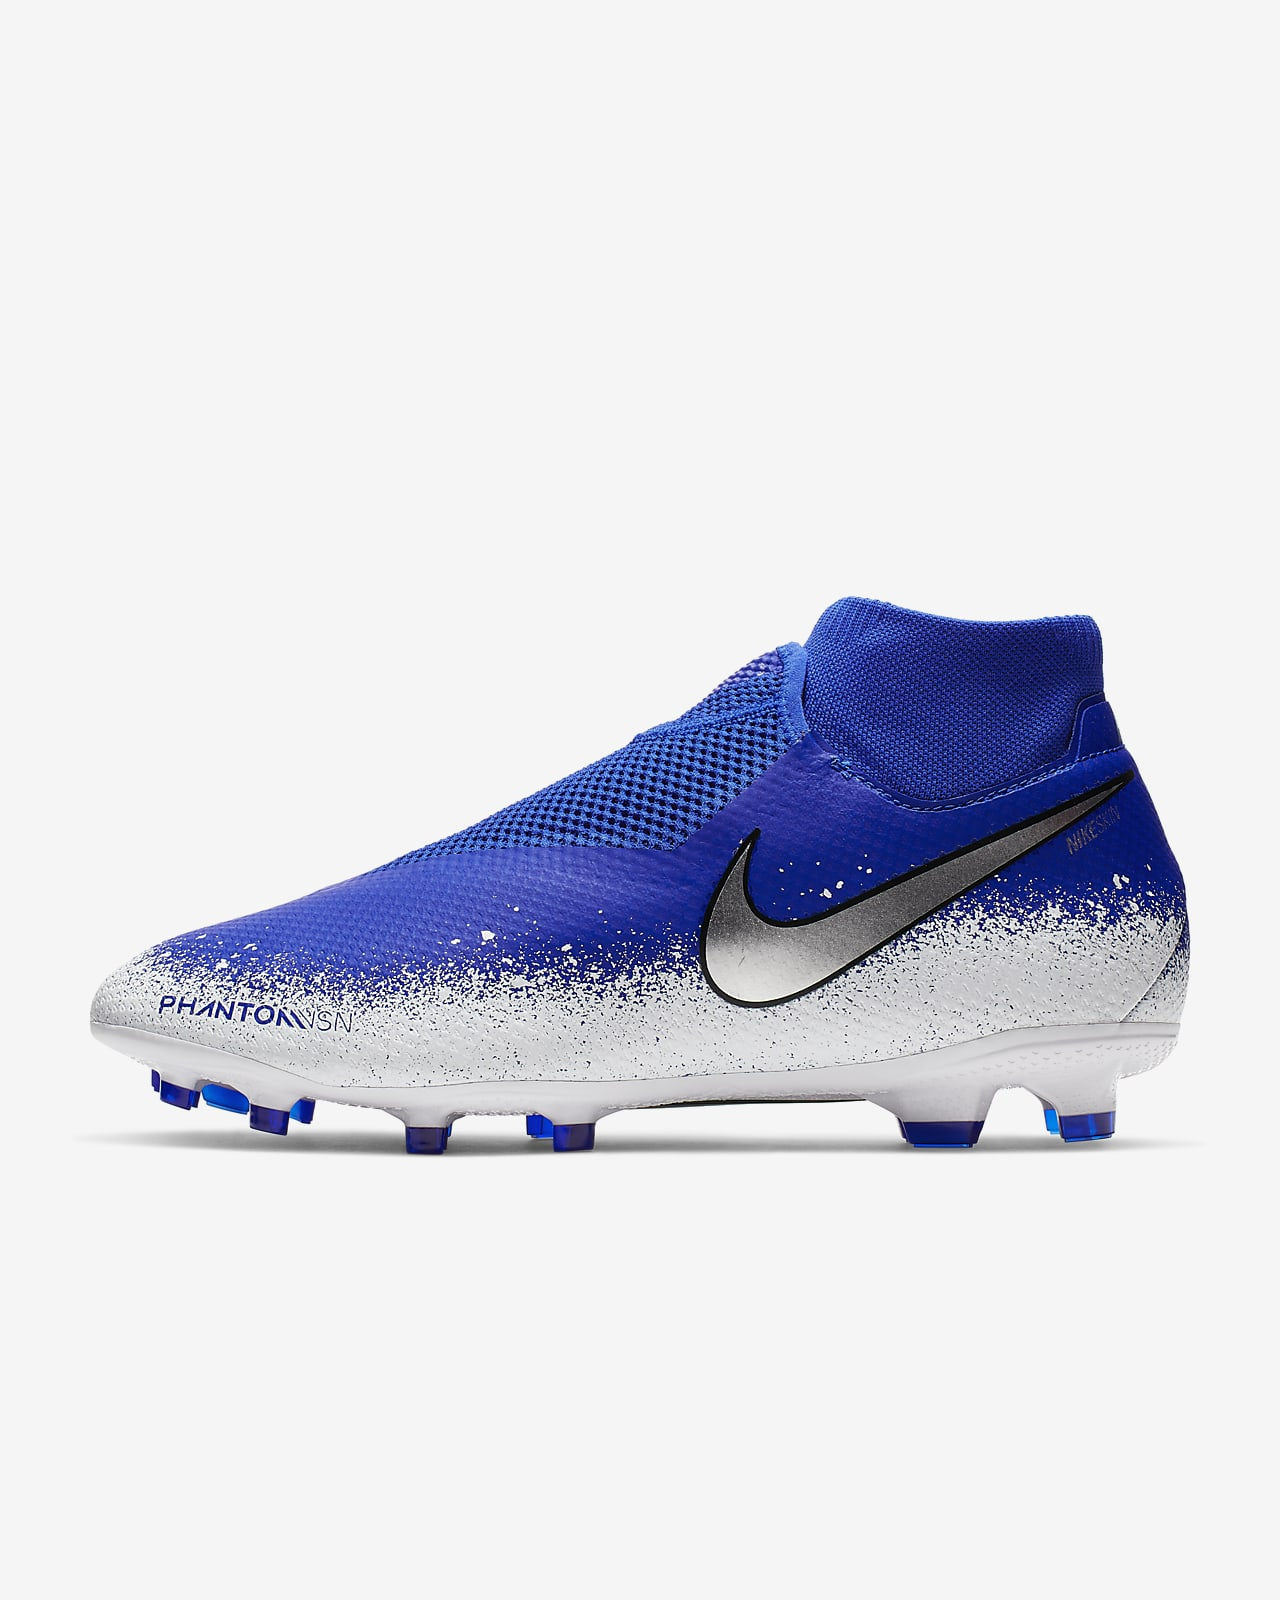 Alegre Mediana Tumor maligno  Nike Phantom Vision Pro Dynamic Fit FG Firm-Ground Soccer Cleat. Nike.com